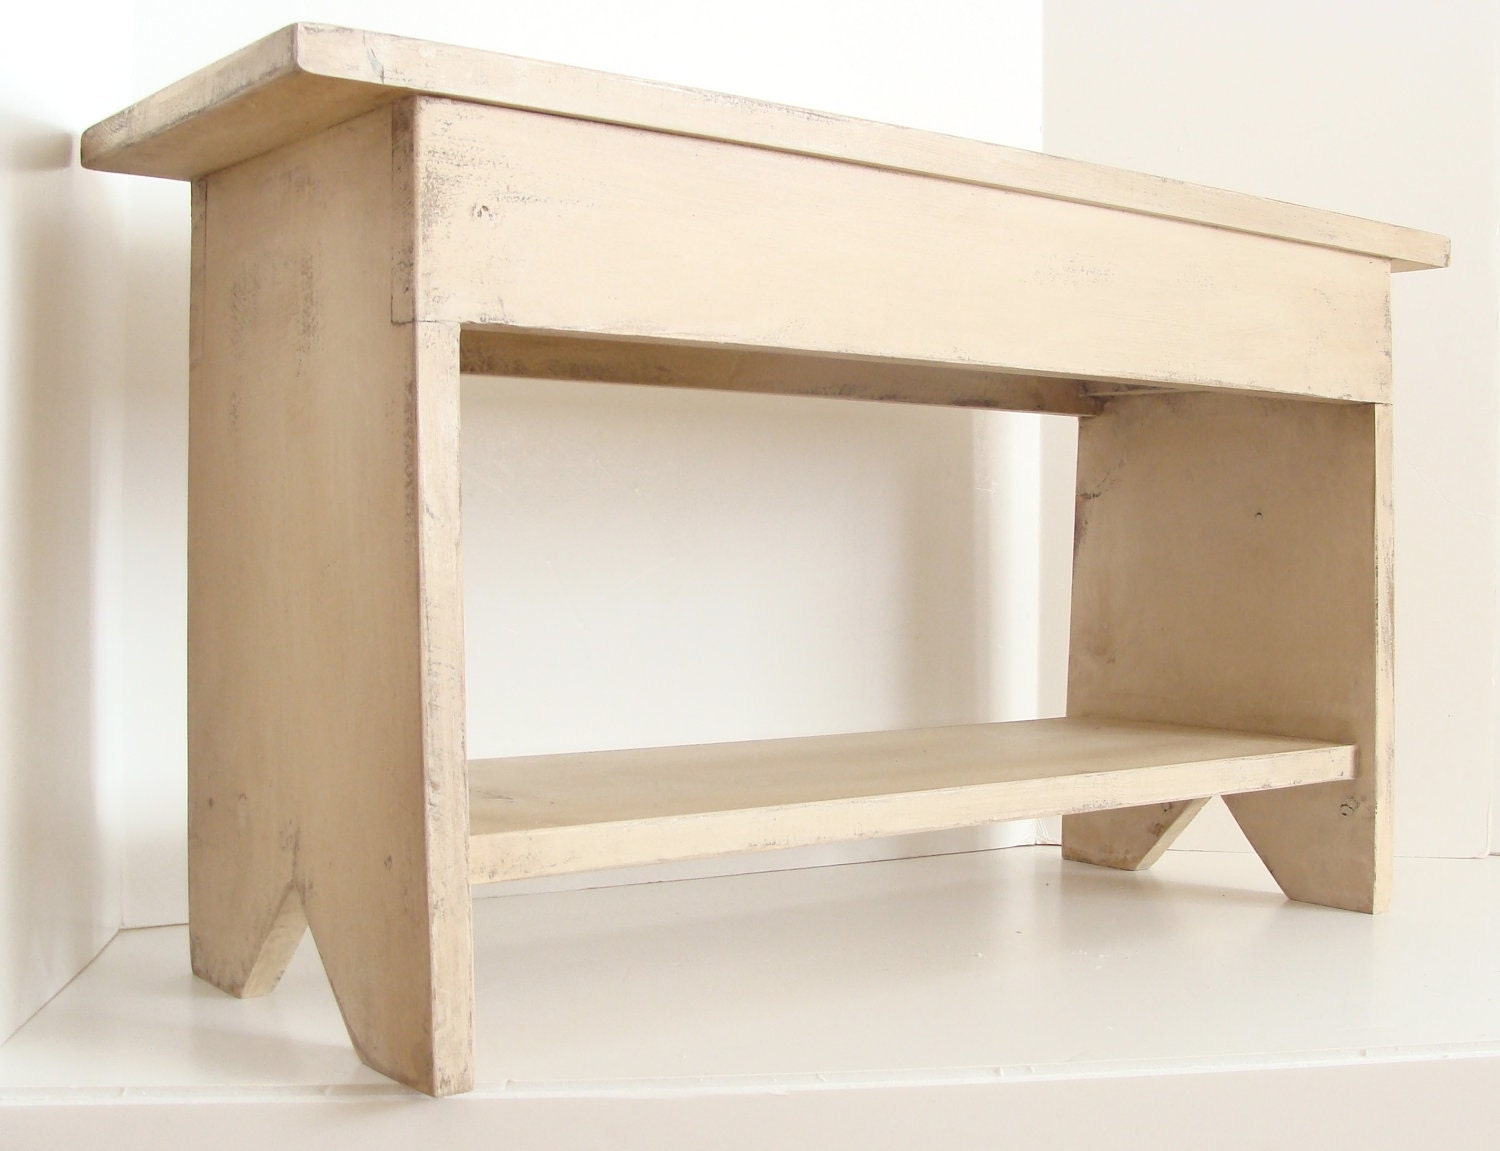 Wood Bench Storage Bench Entryway Bench Kids Furniture